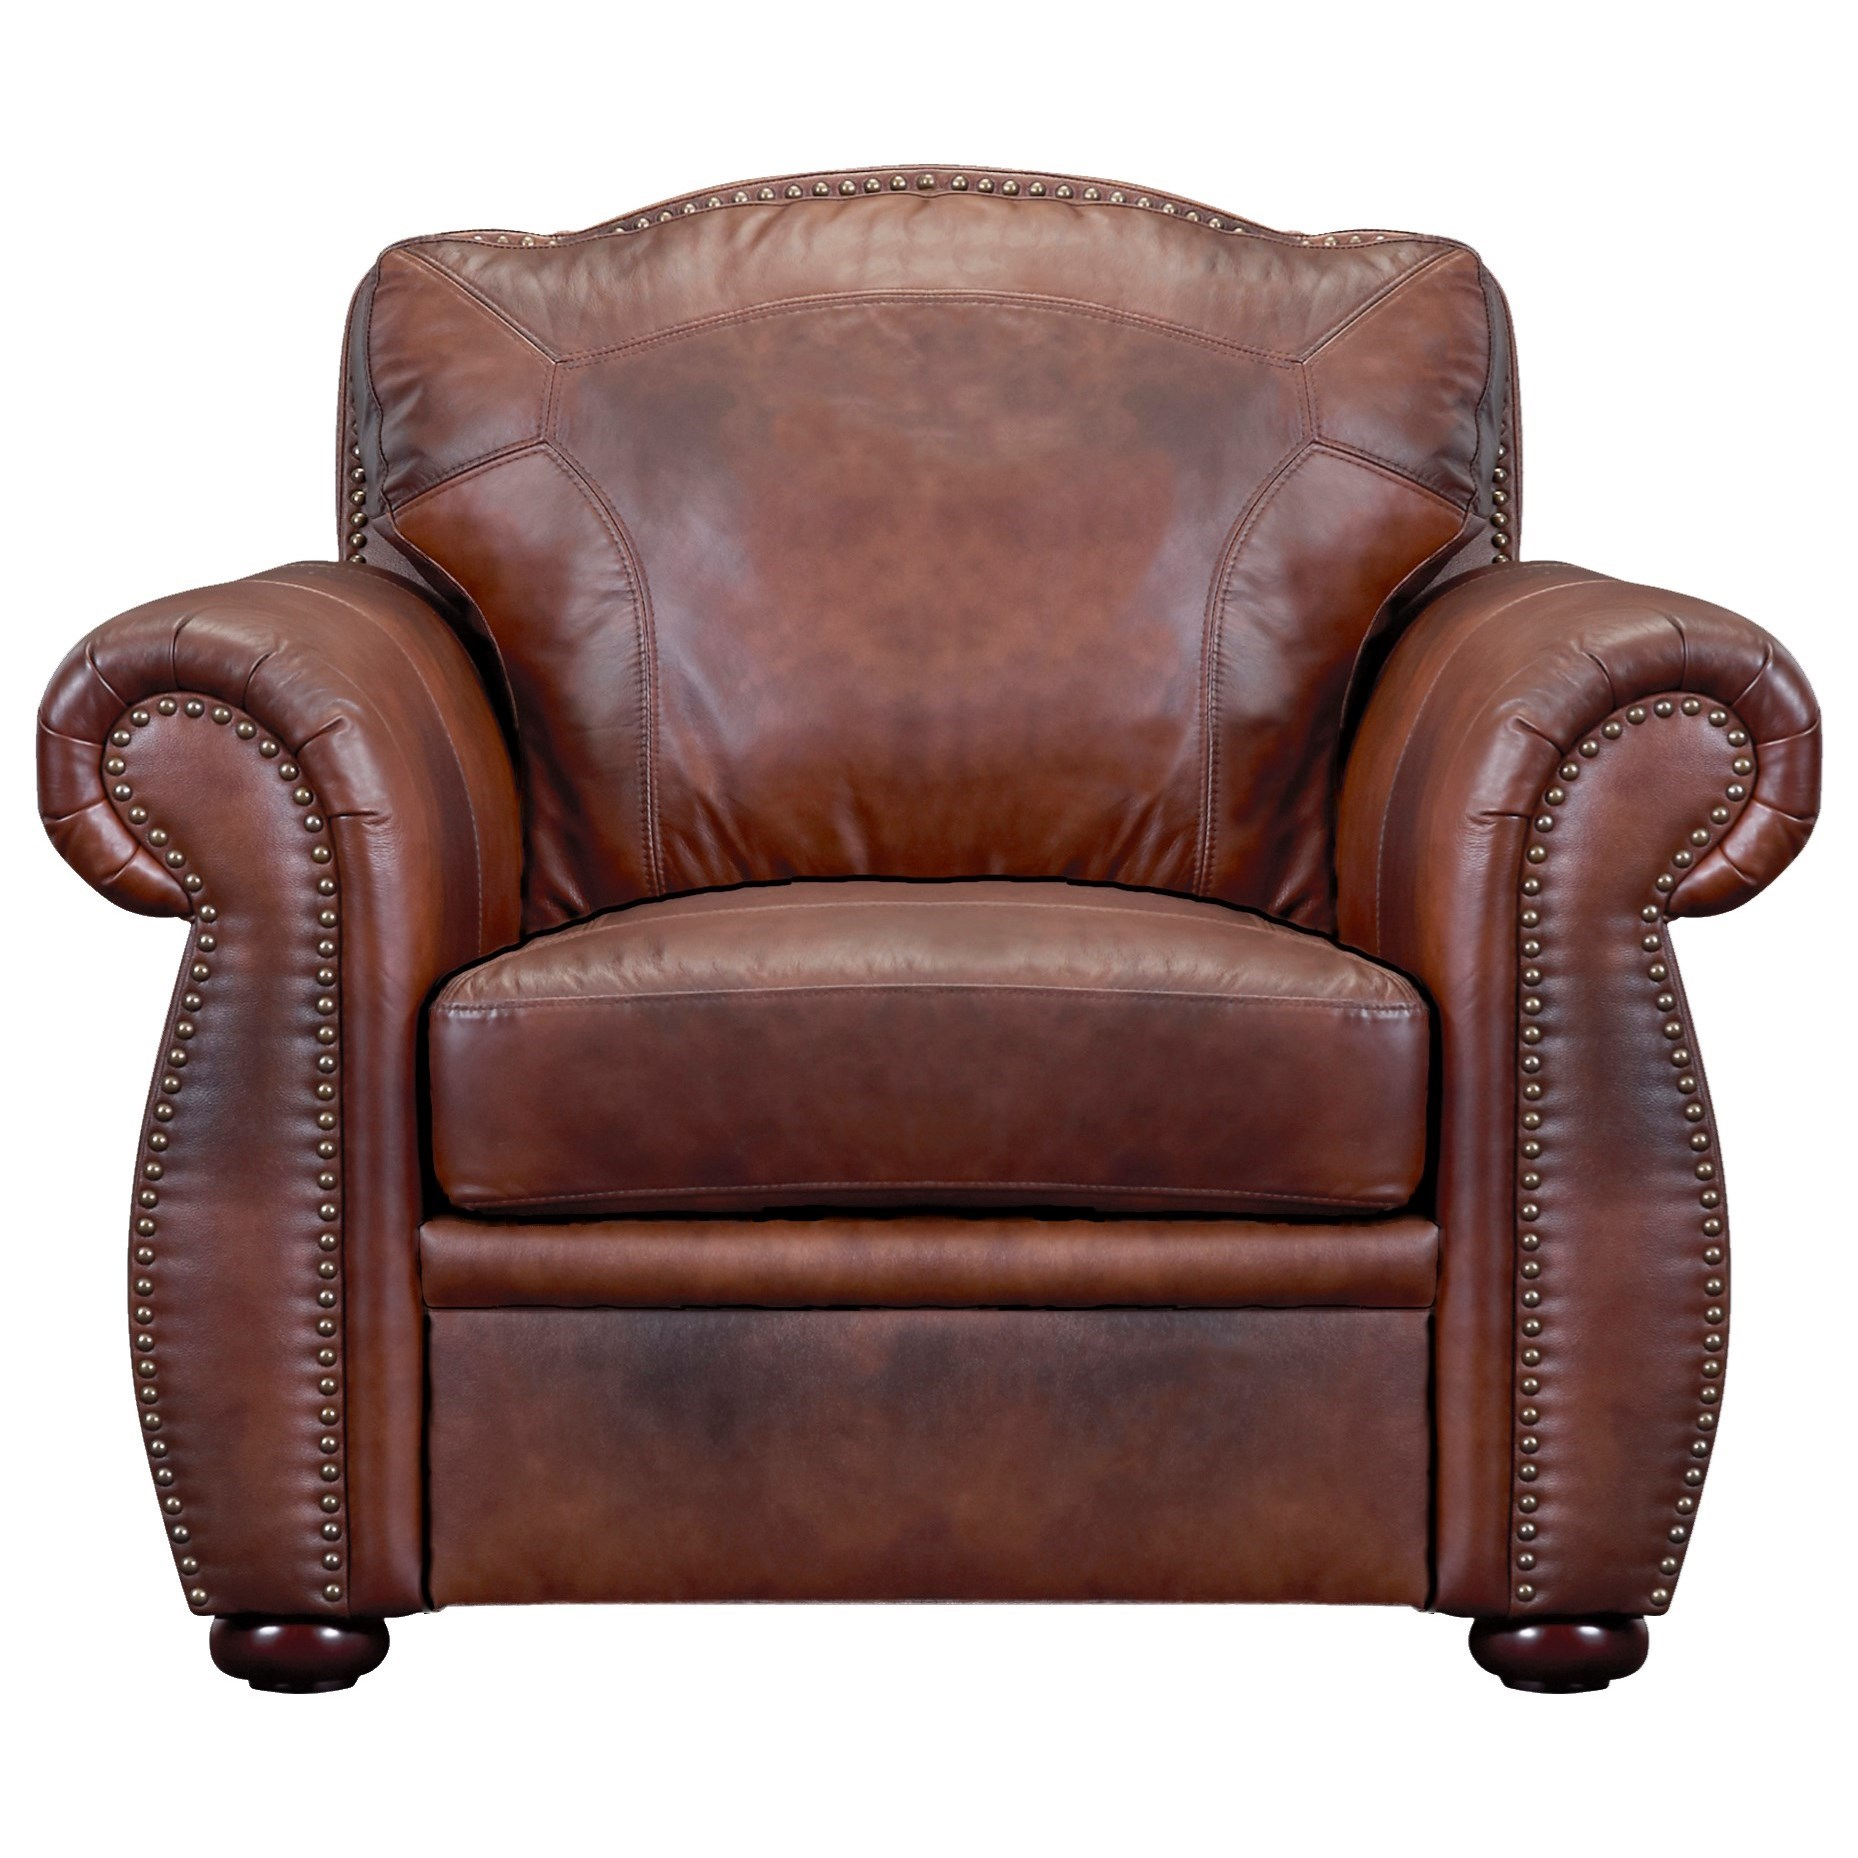 Arizona Leather Chair by Leather Italia USA at Lapeer Furniture & Mattress Center